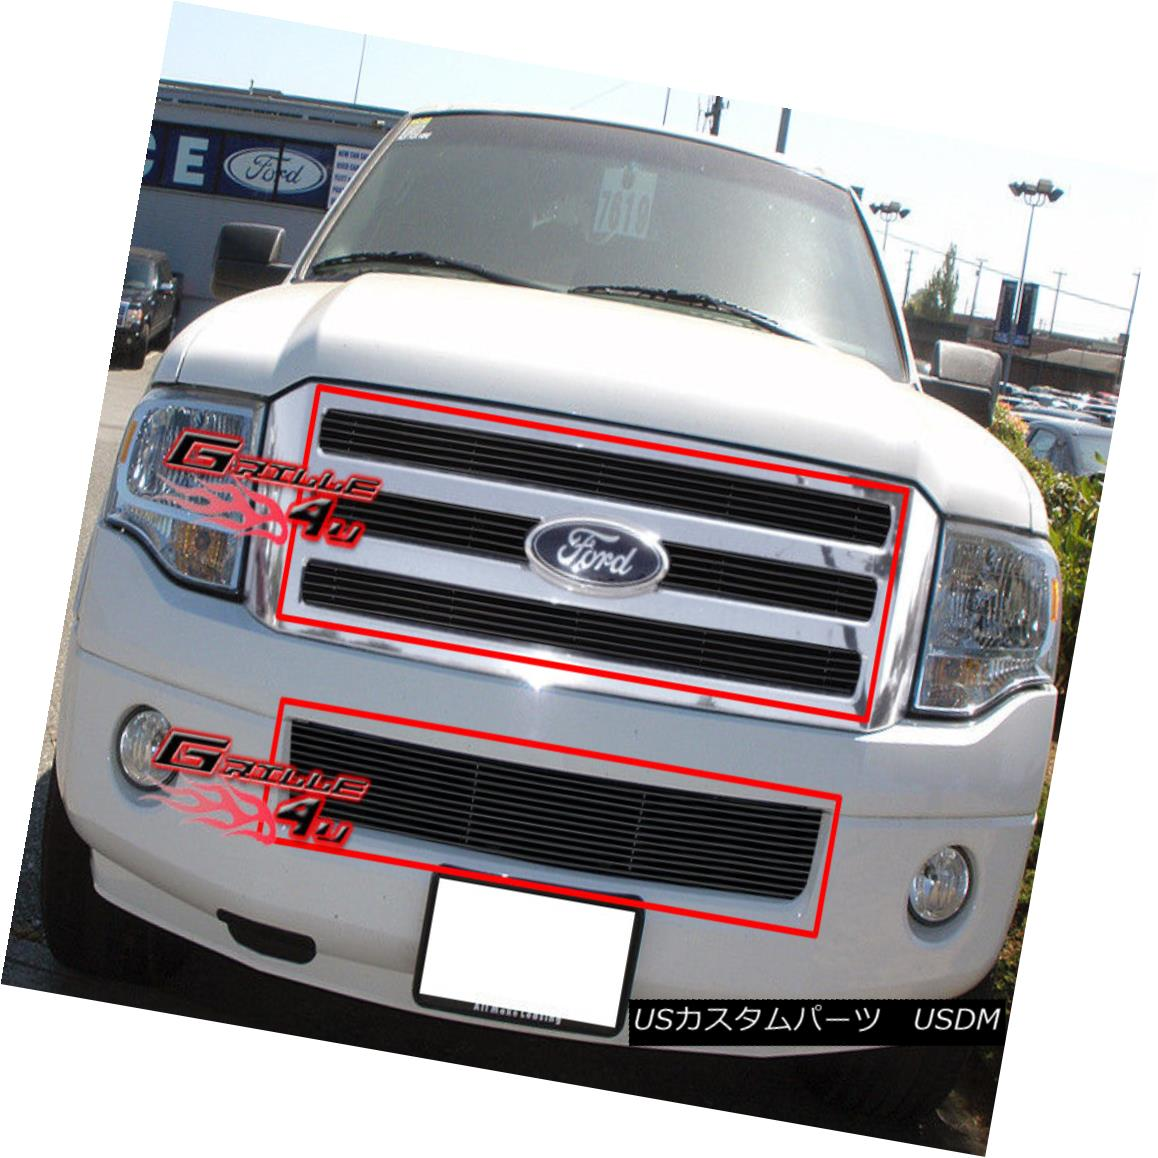 グリル For 07-14 2014 Ford Expedition Black Billet Grille Combo 2014年7月14日、Ford Expedition Black Billet Grille Combo